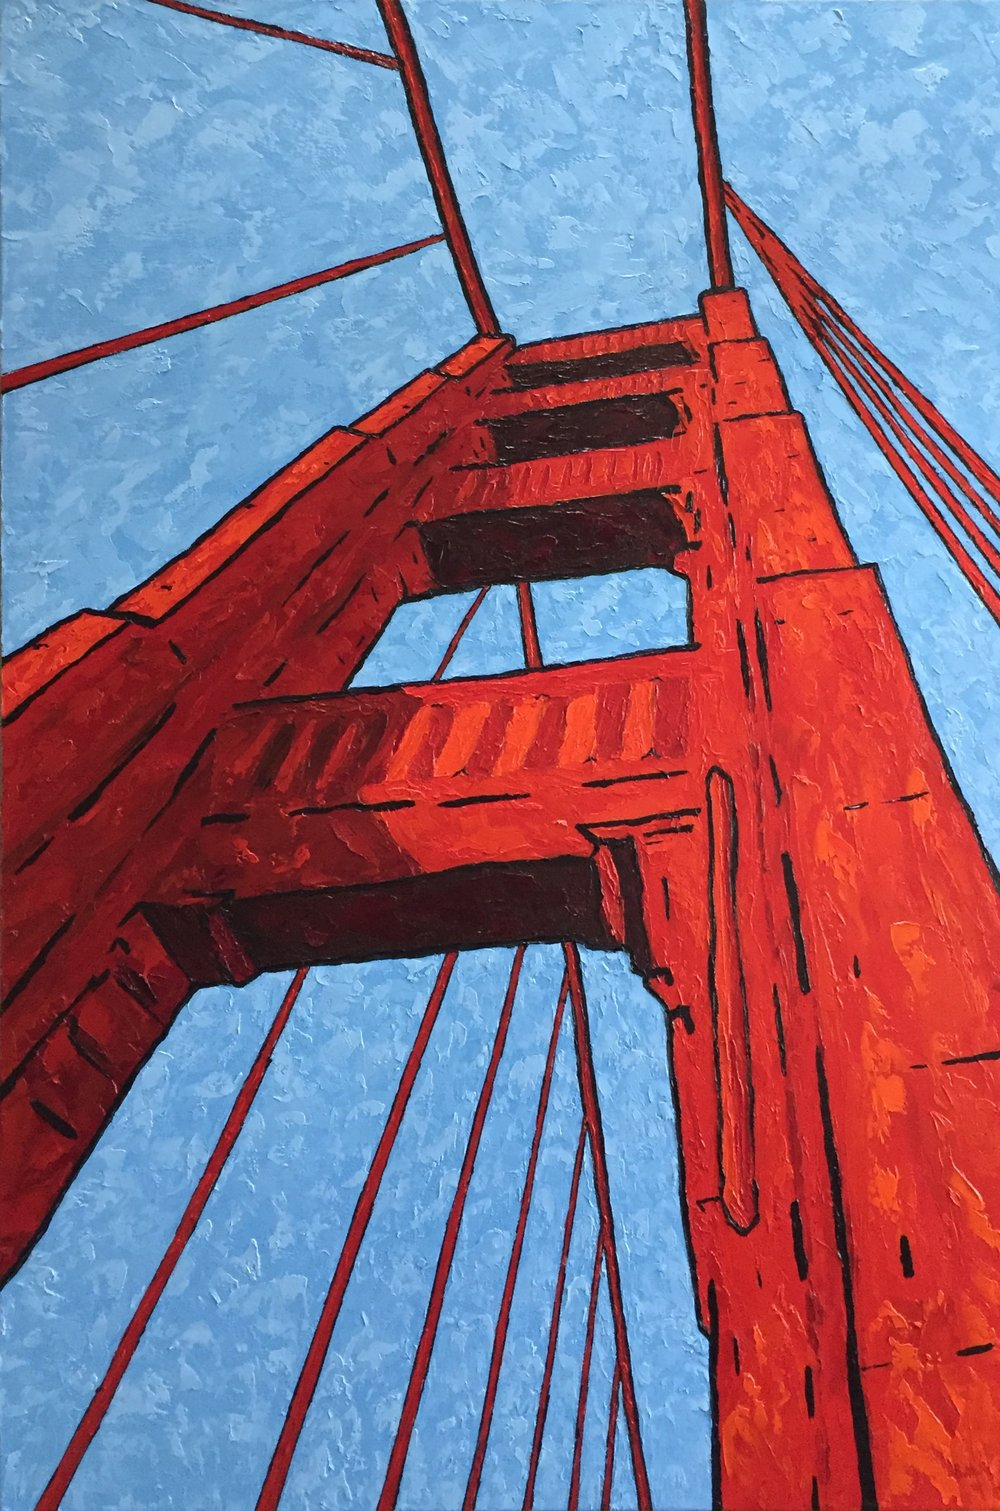 Whats Up Golden Gate - 36x24